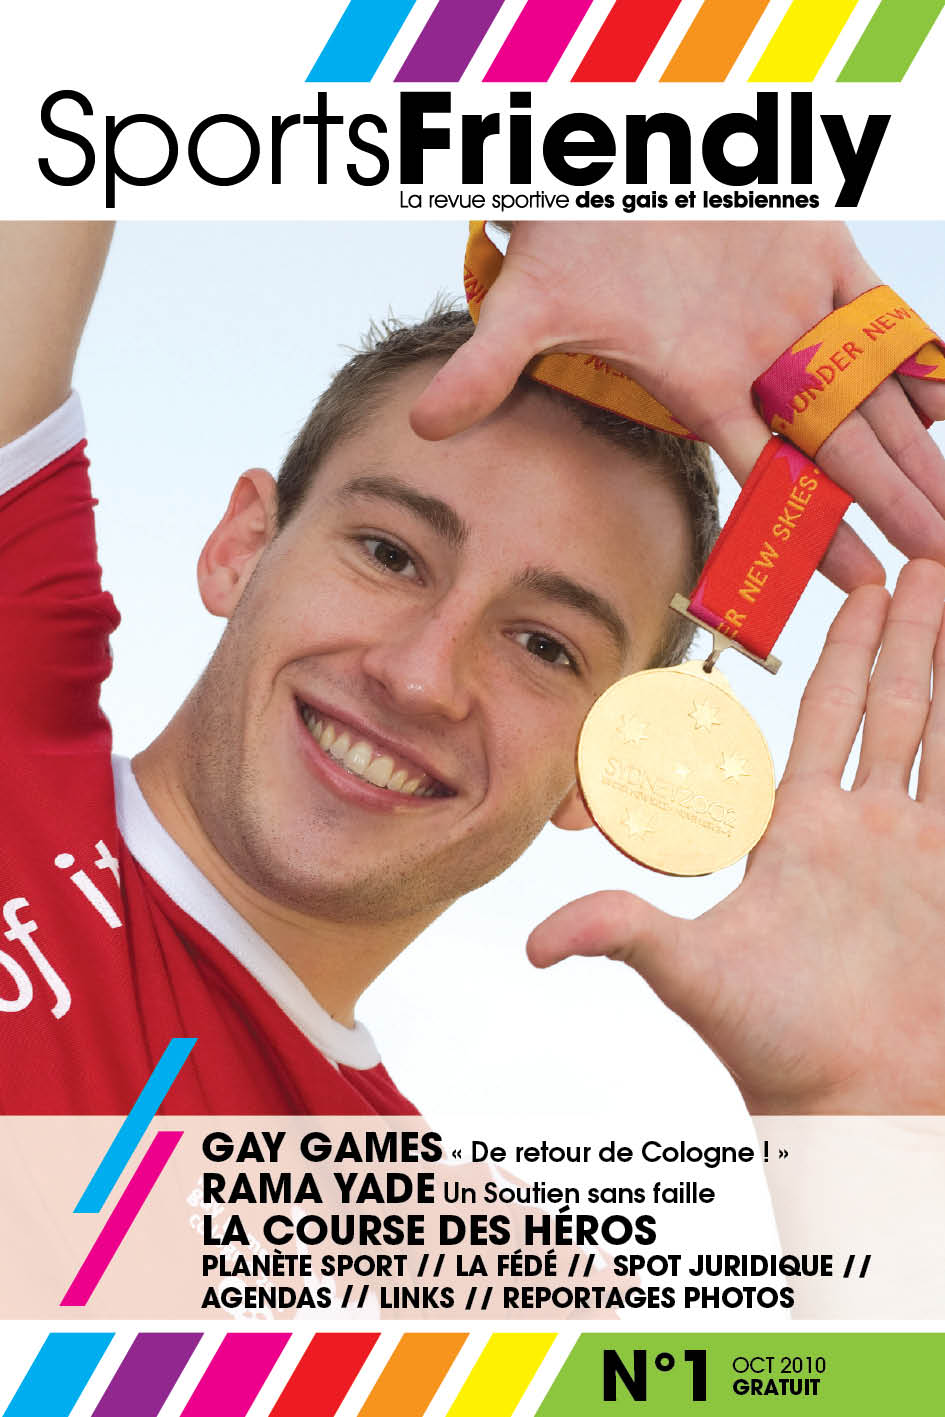 SportsFriendly is a new Paris-based quarterly magazine devoted to LGBT sport ...